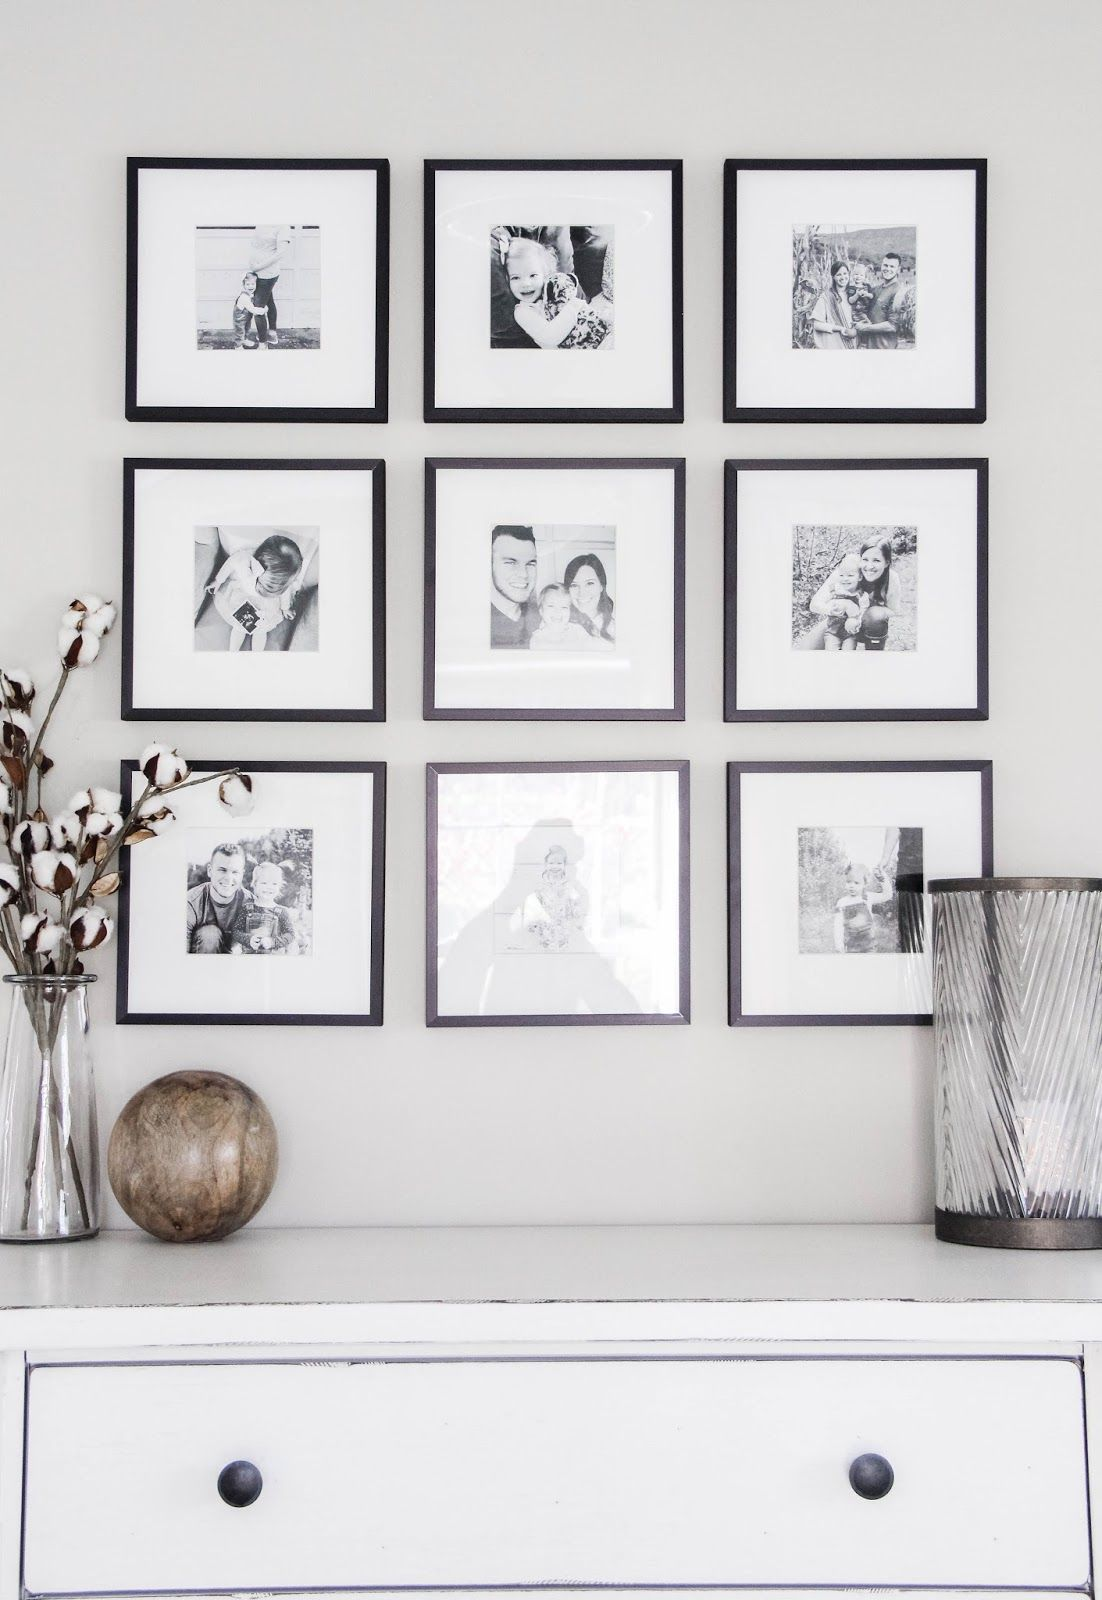 Master Bedroom Black White Gallery Wall In 2020 Bedroom Black Gallery Wall Black White Photo Wall